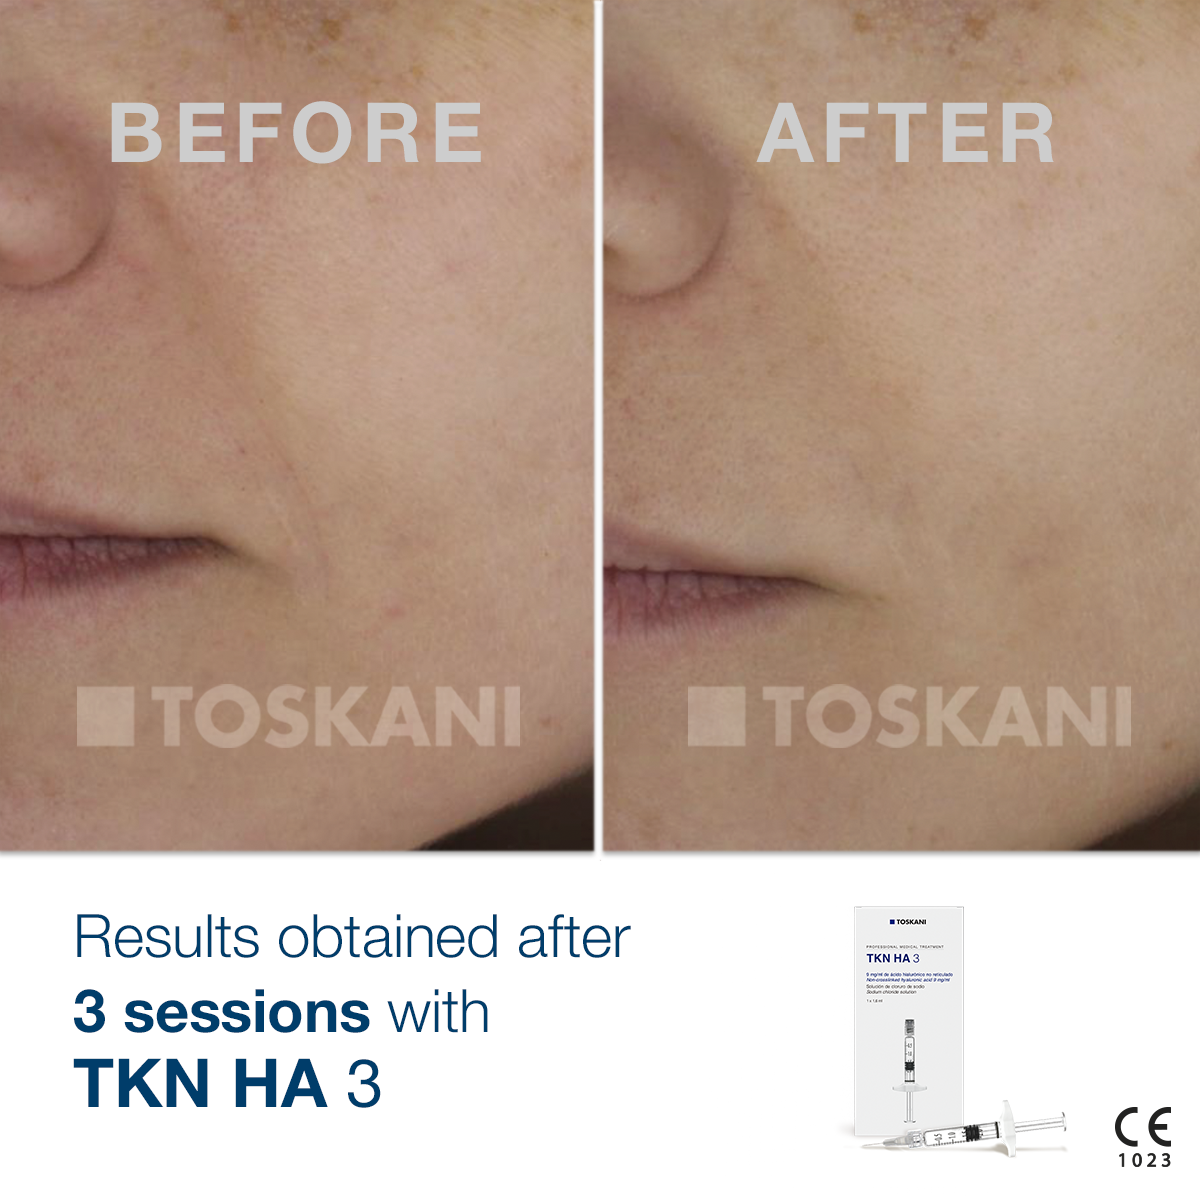 TKN_HA3_before-after_1